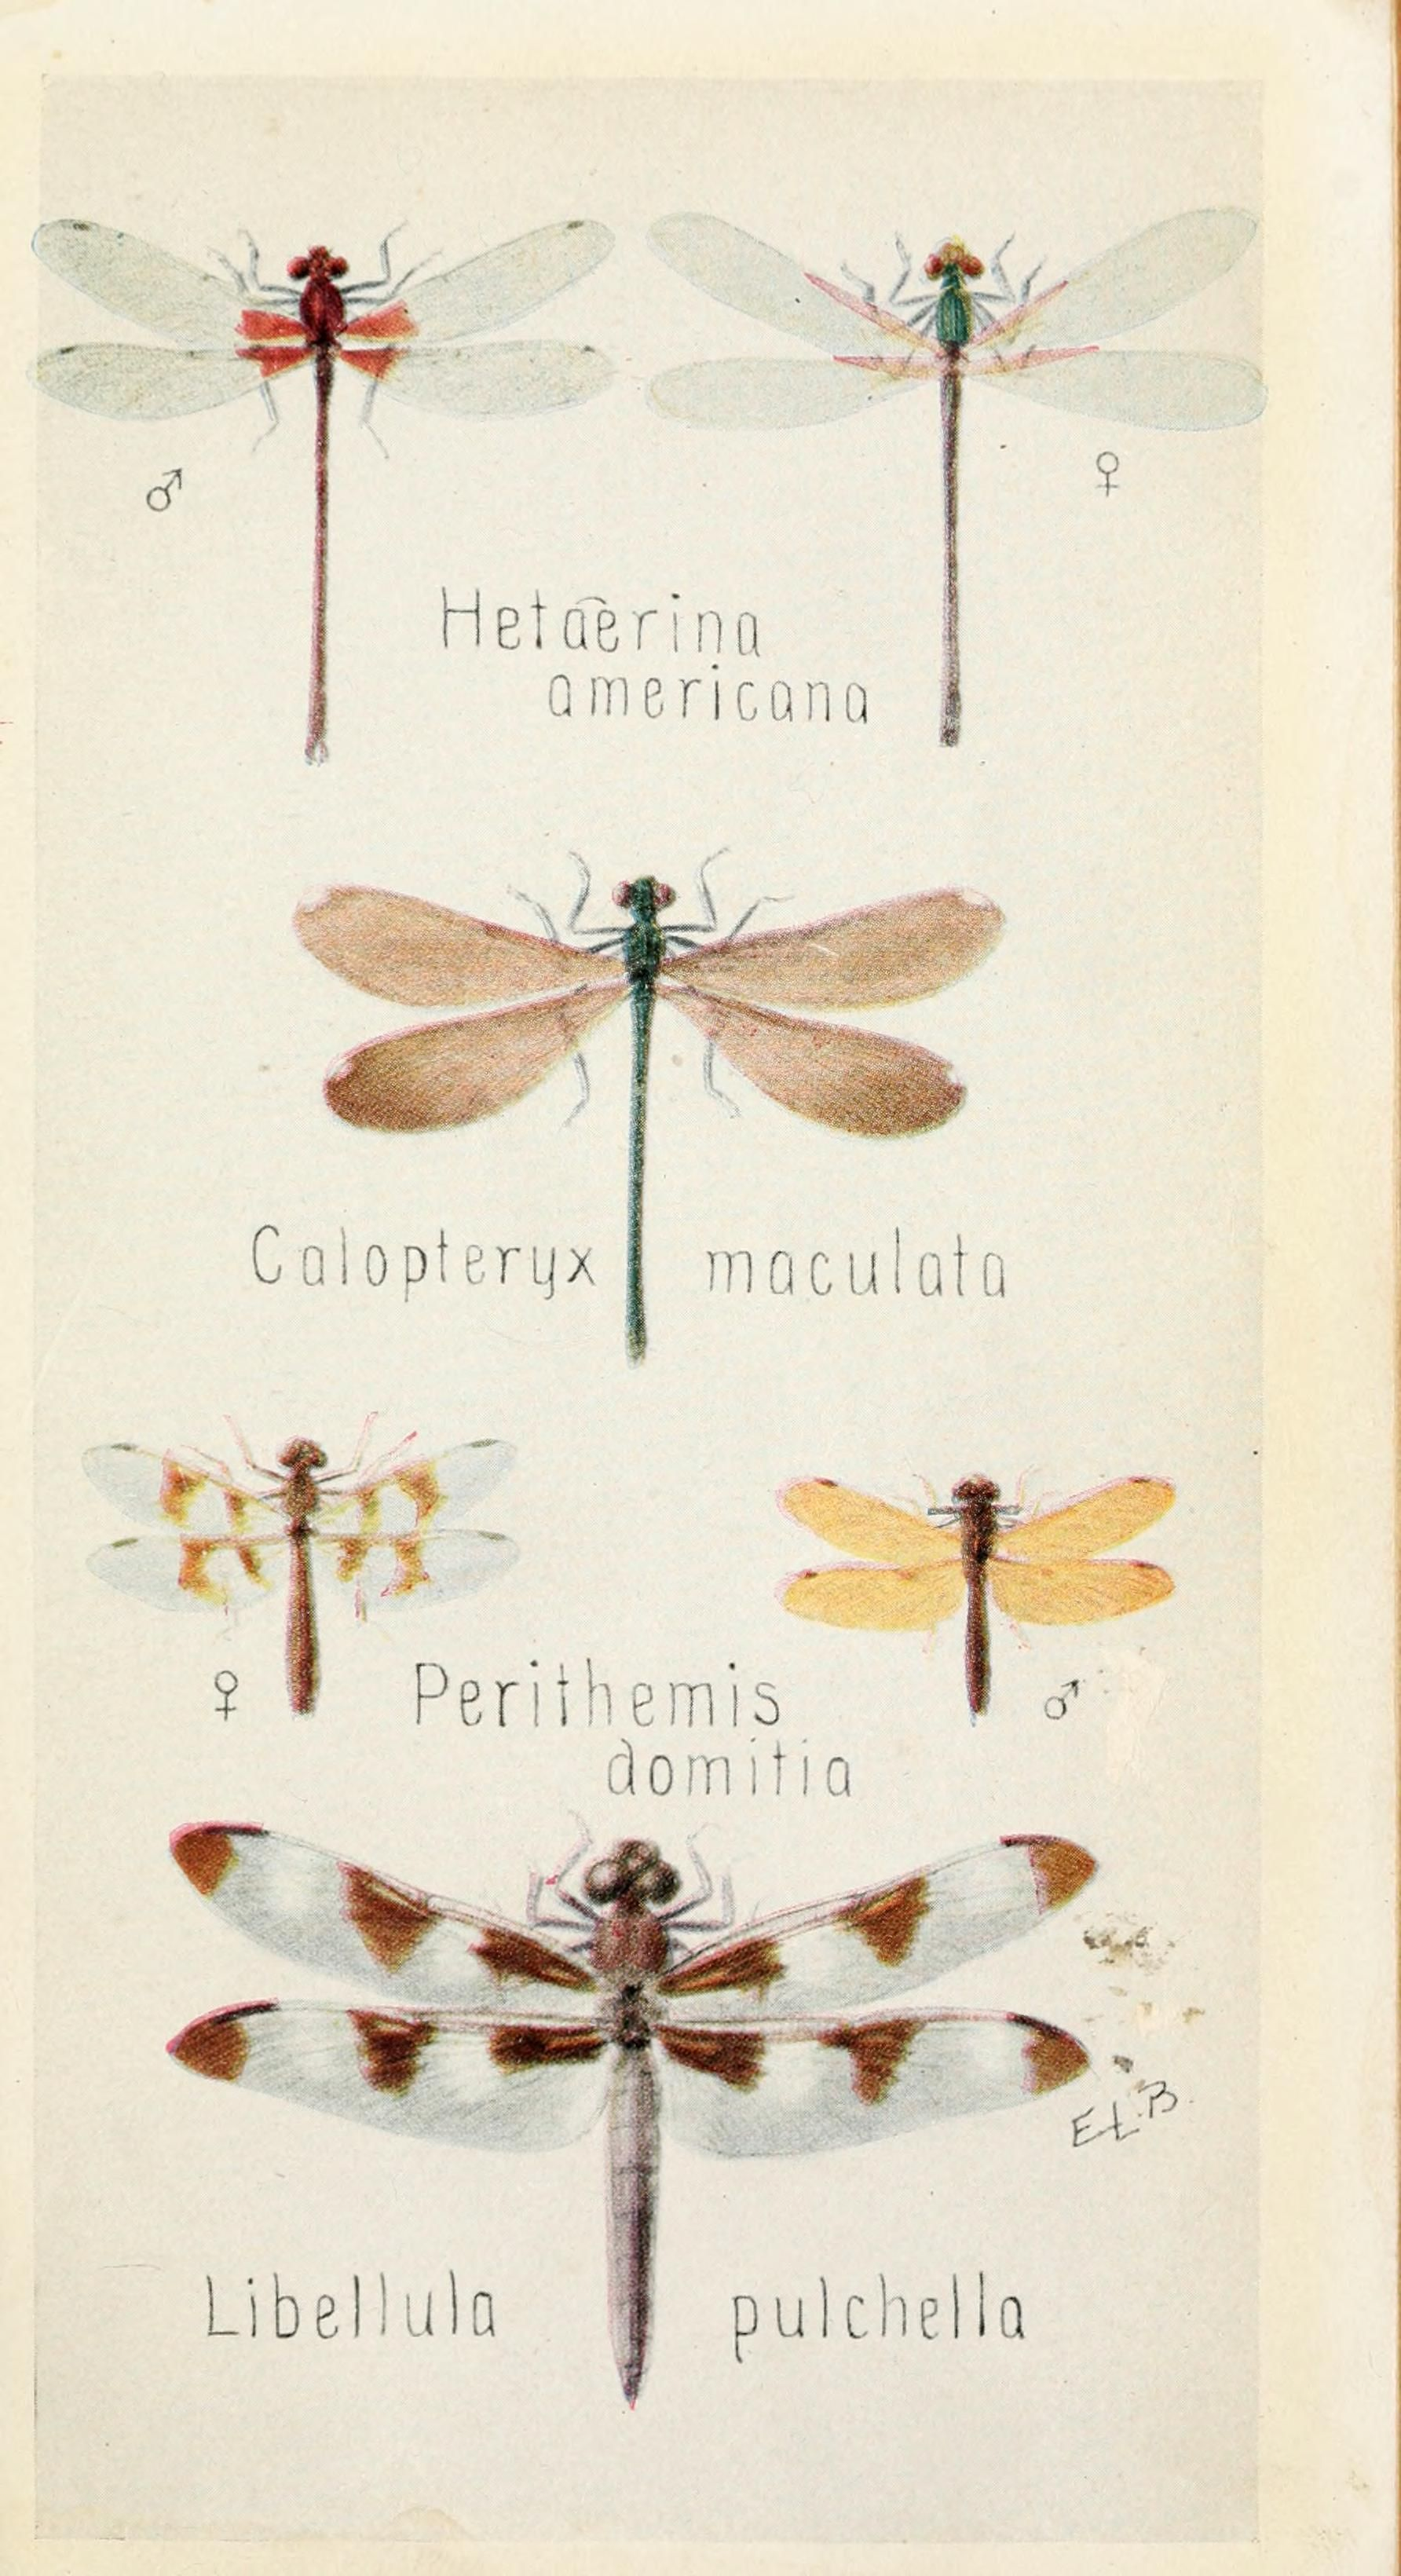 Field book of insects | Insects | Pinterest | Insects, Fields and ...